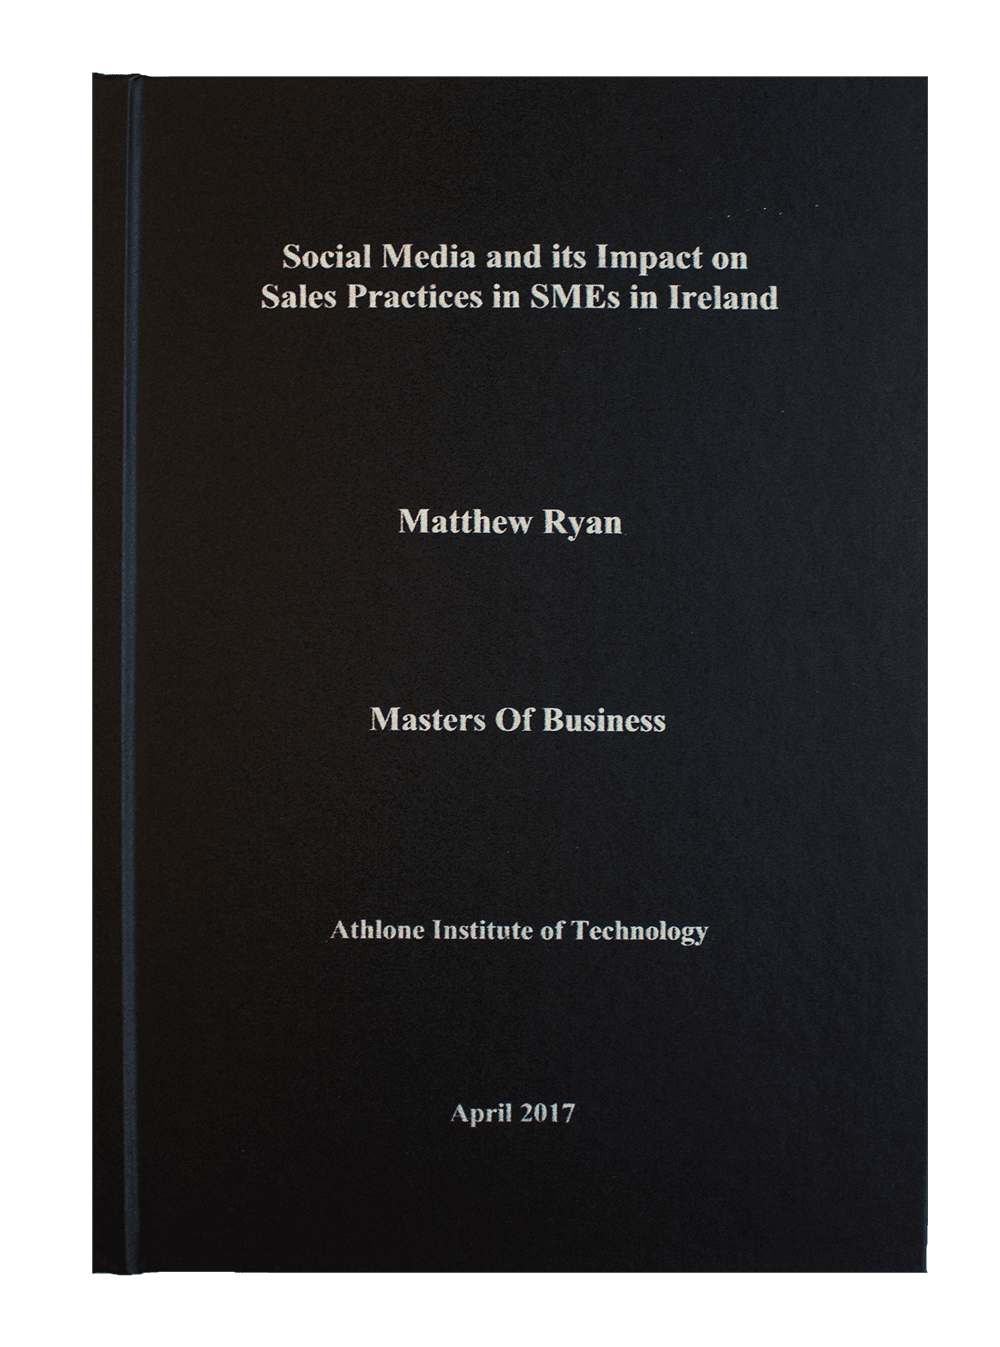 Hard Bound thesis